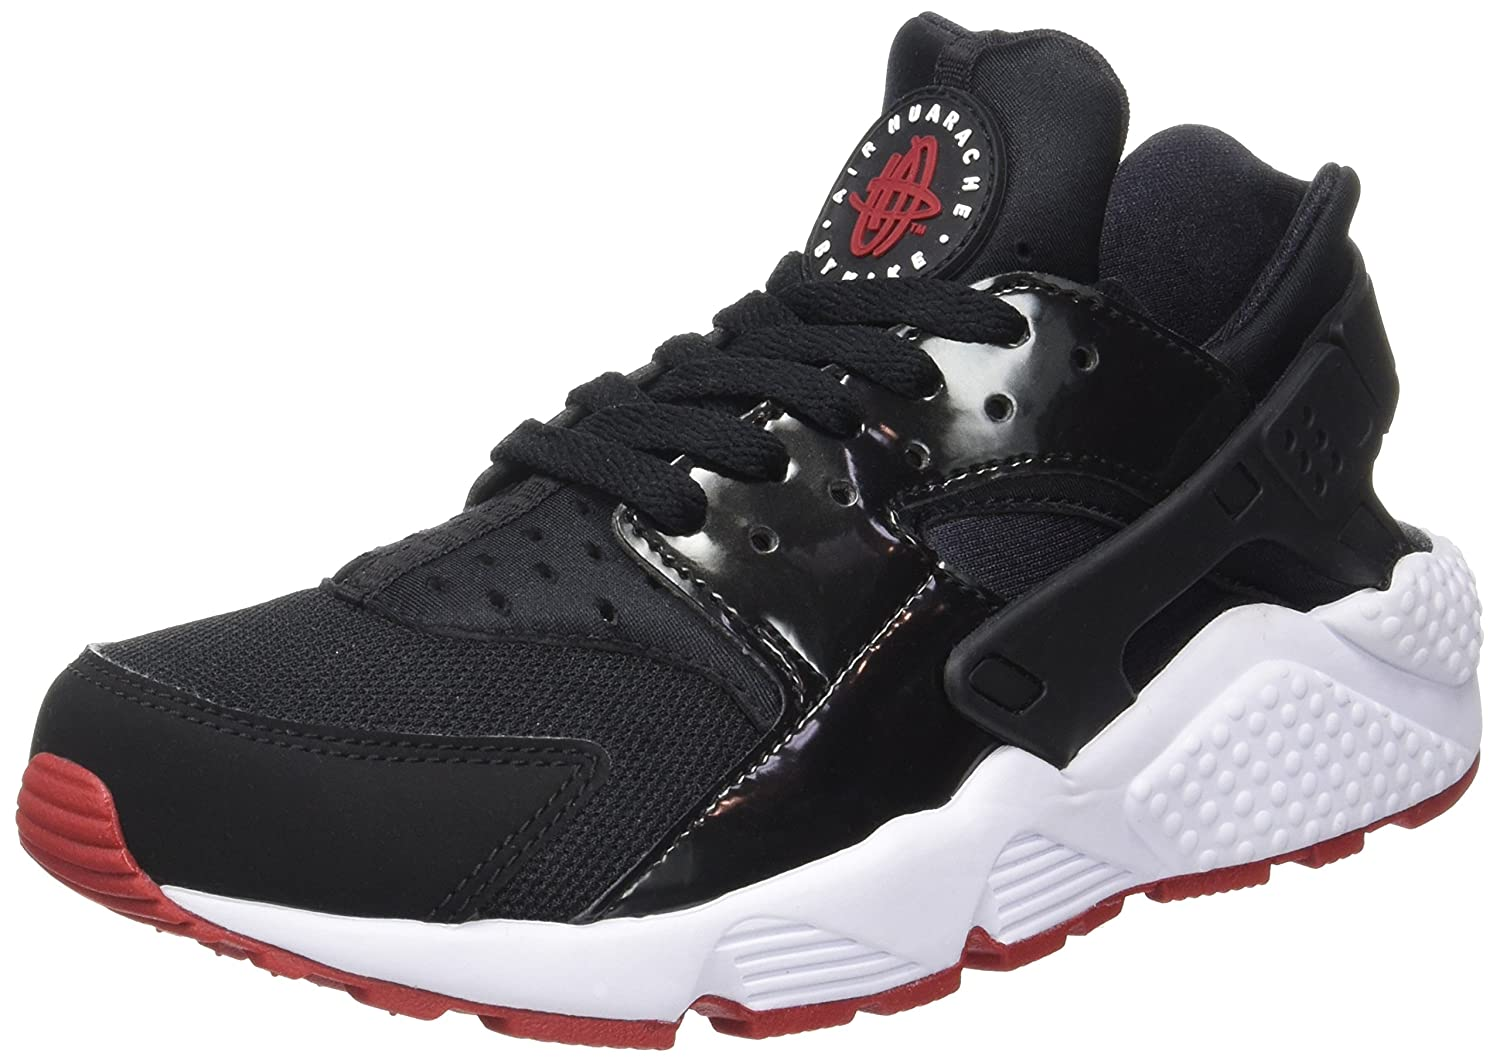 reputable site 0c76a 45907 Amazon.com  Nike Air Huarache